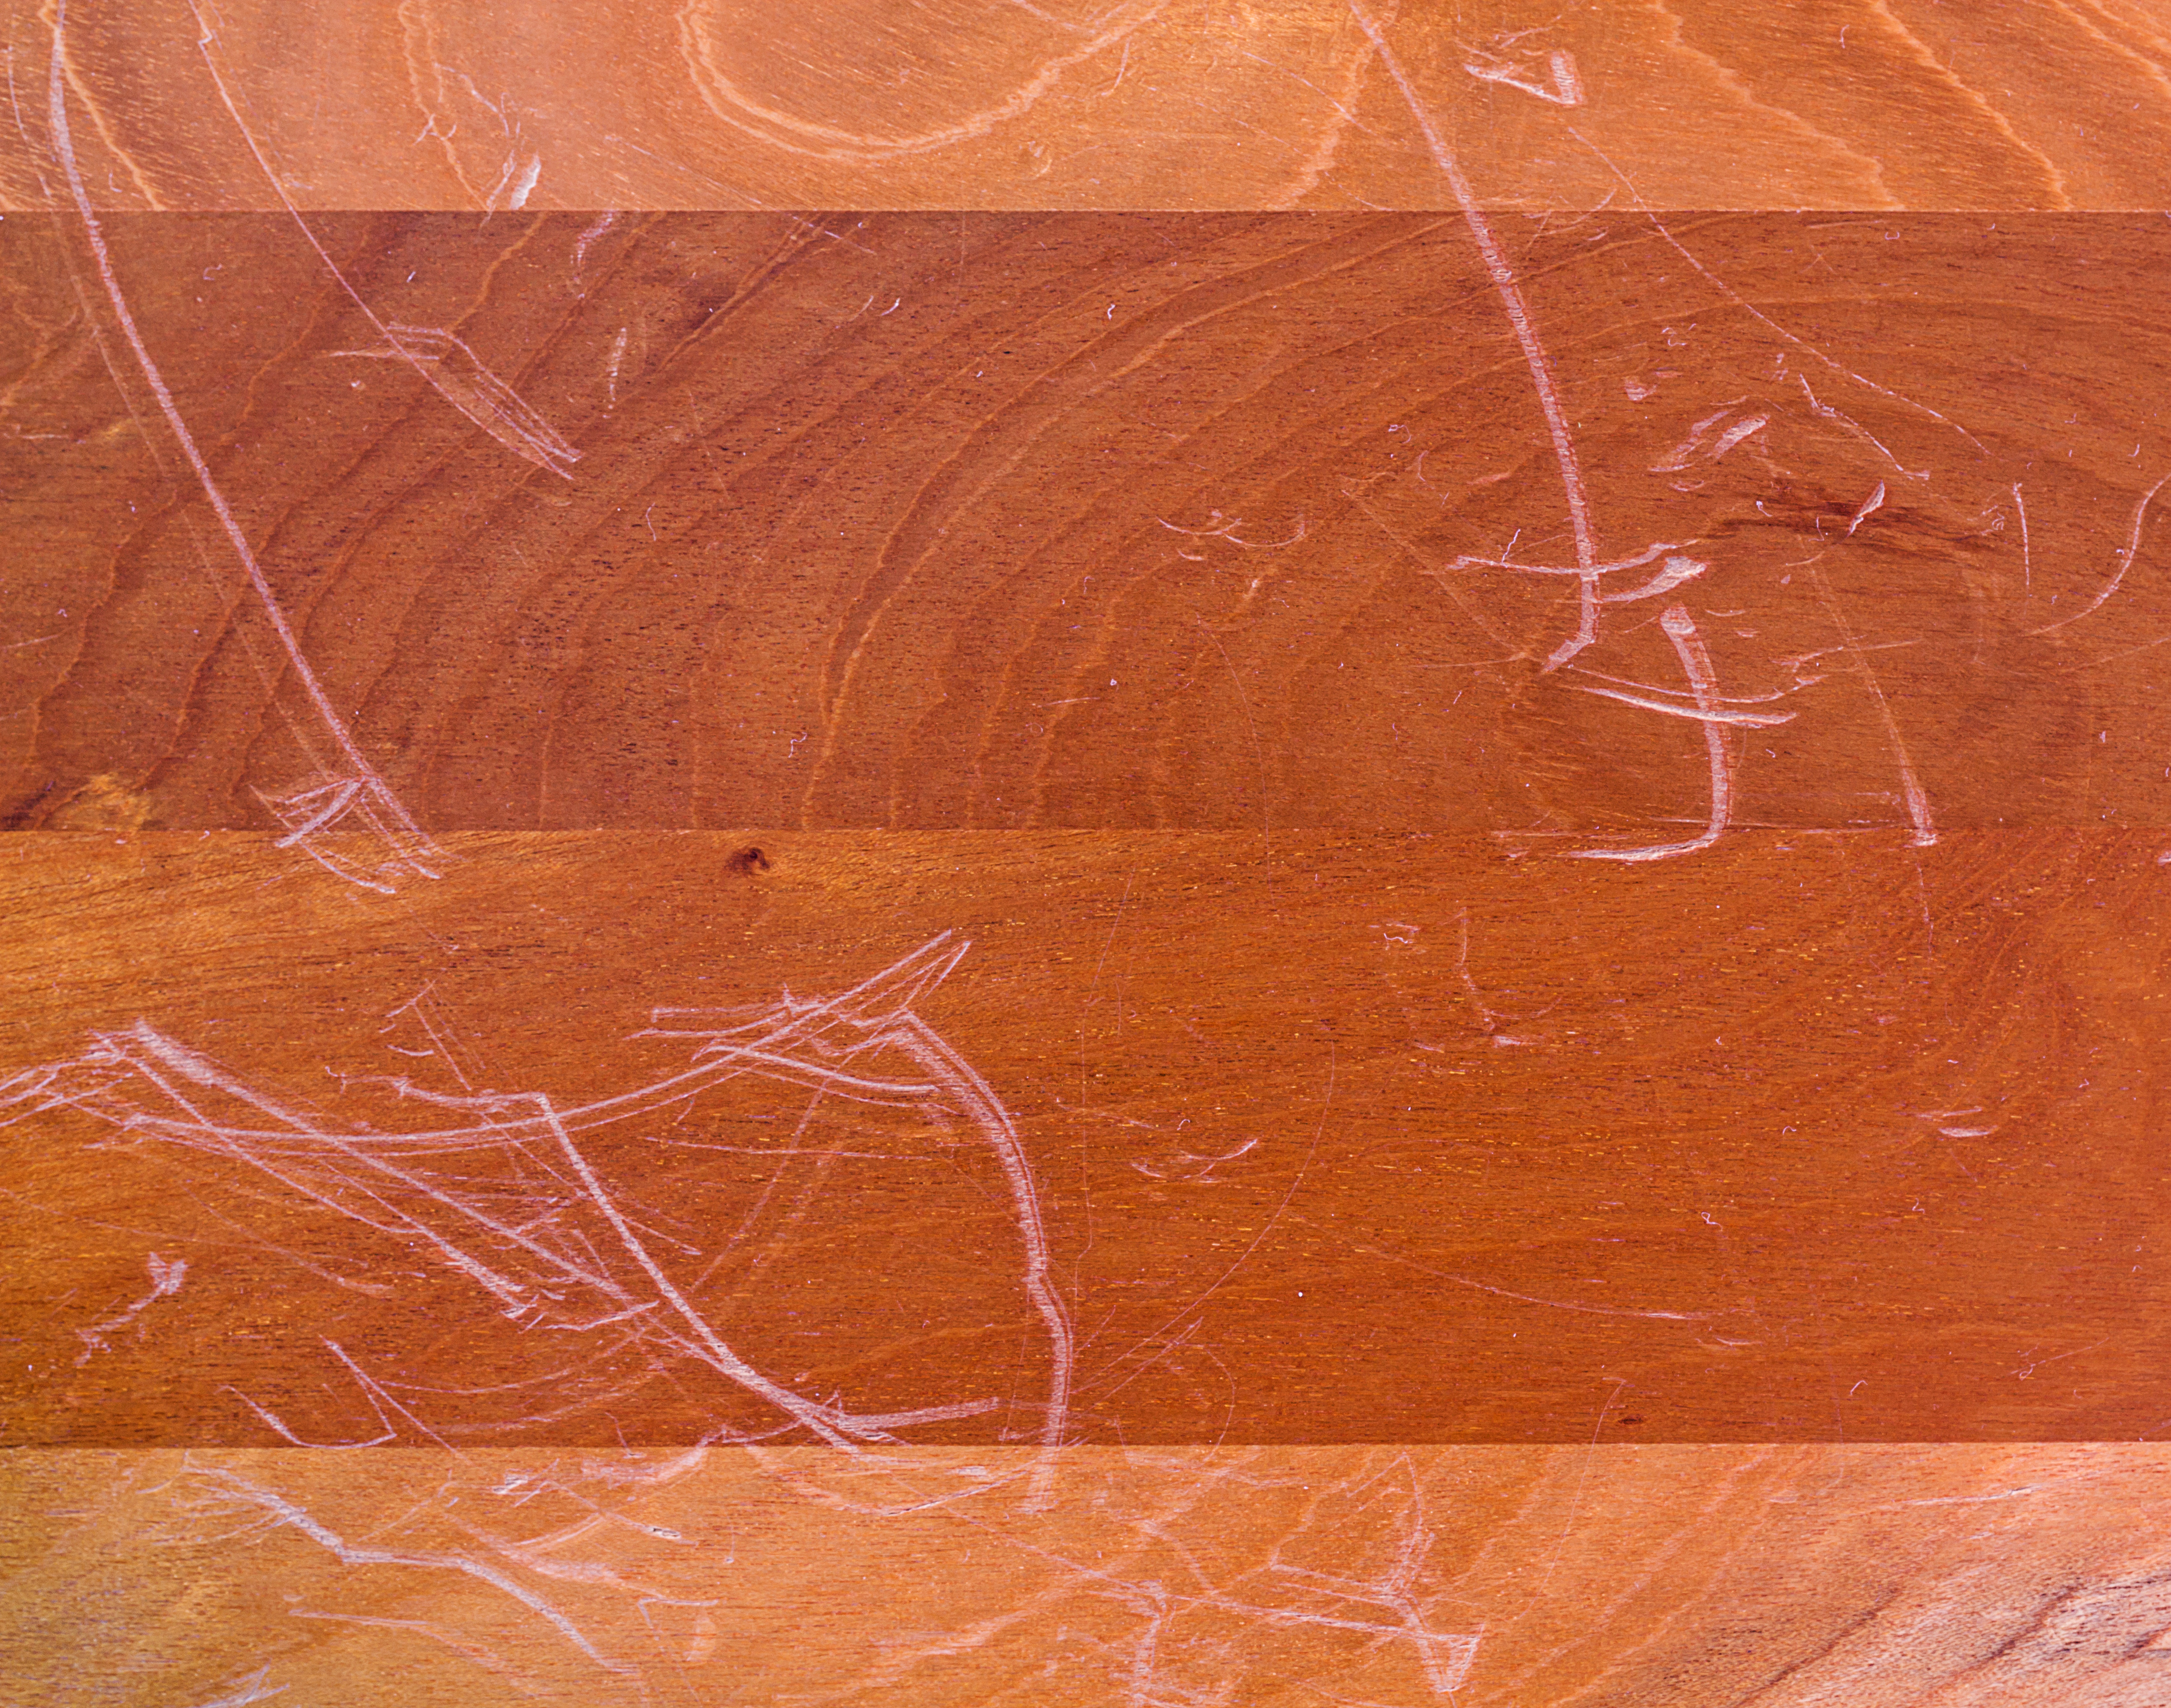 What To Do About Scratches in Hardwood Flooring | Timberline Discount  Flooring Center Houston TX